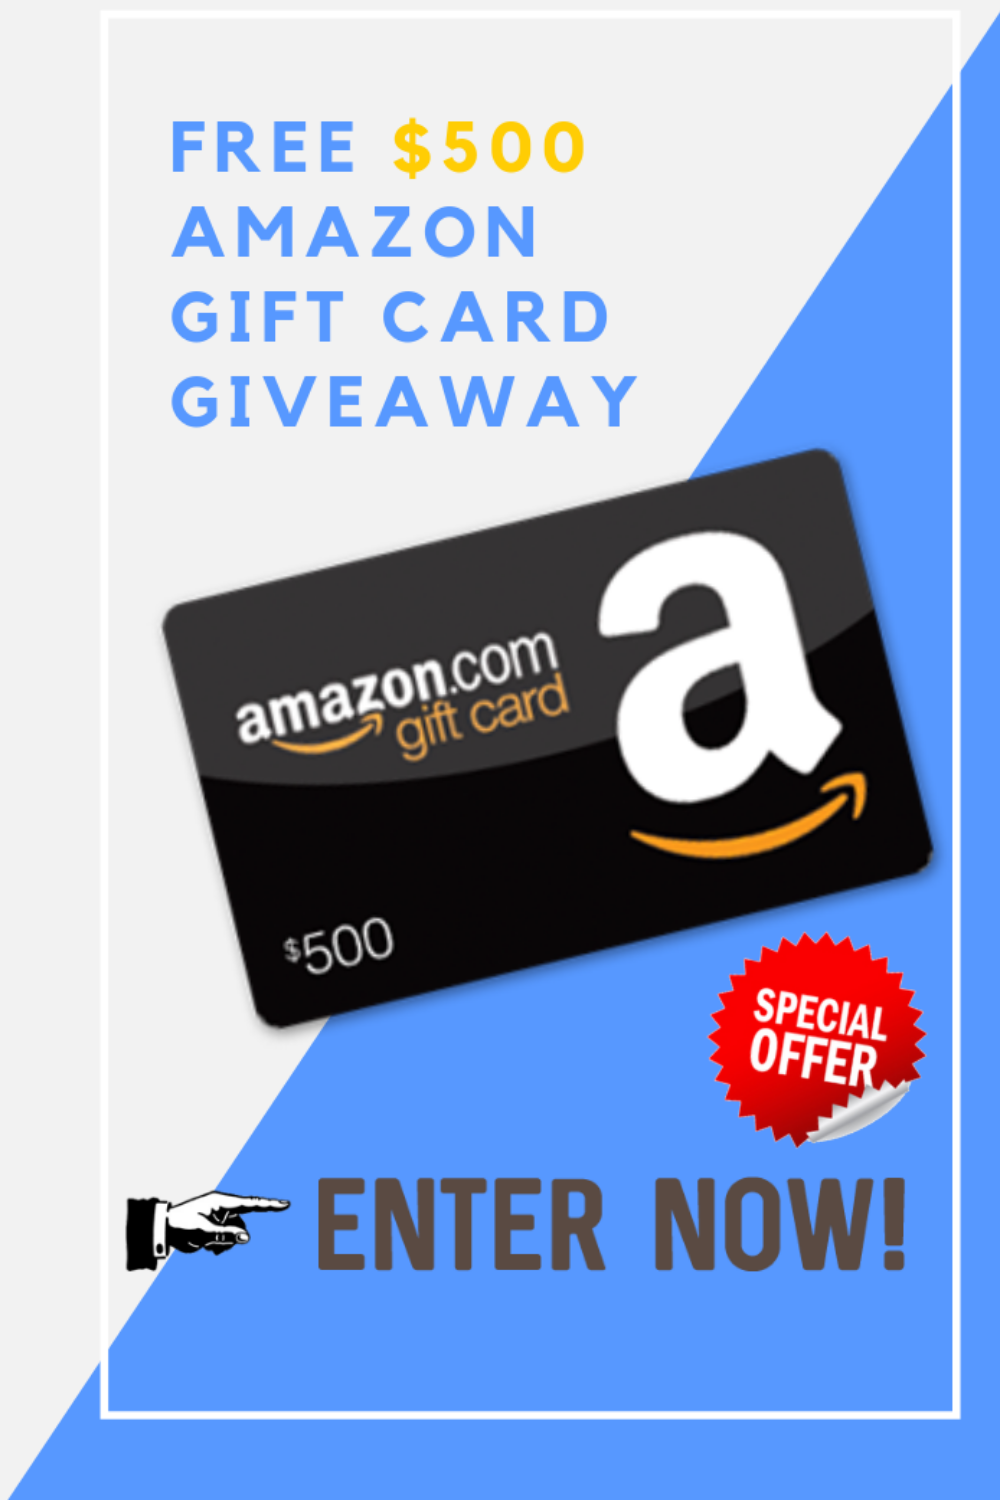 Amazon Gift Cards Amazon Gift Cards For Teachers Amazon Gift Cards Free Free Amazon Gift Card Amazon Gift Card Free Amazon Gift Cards Free Gift Card Generator